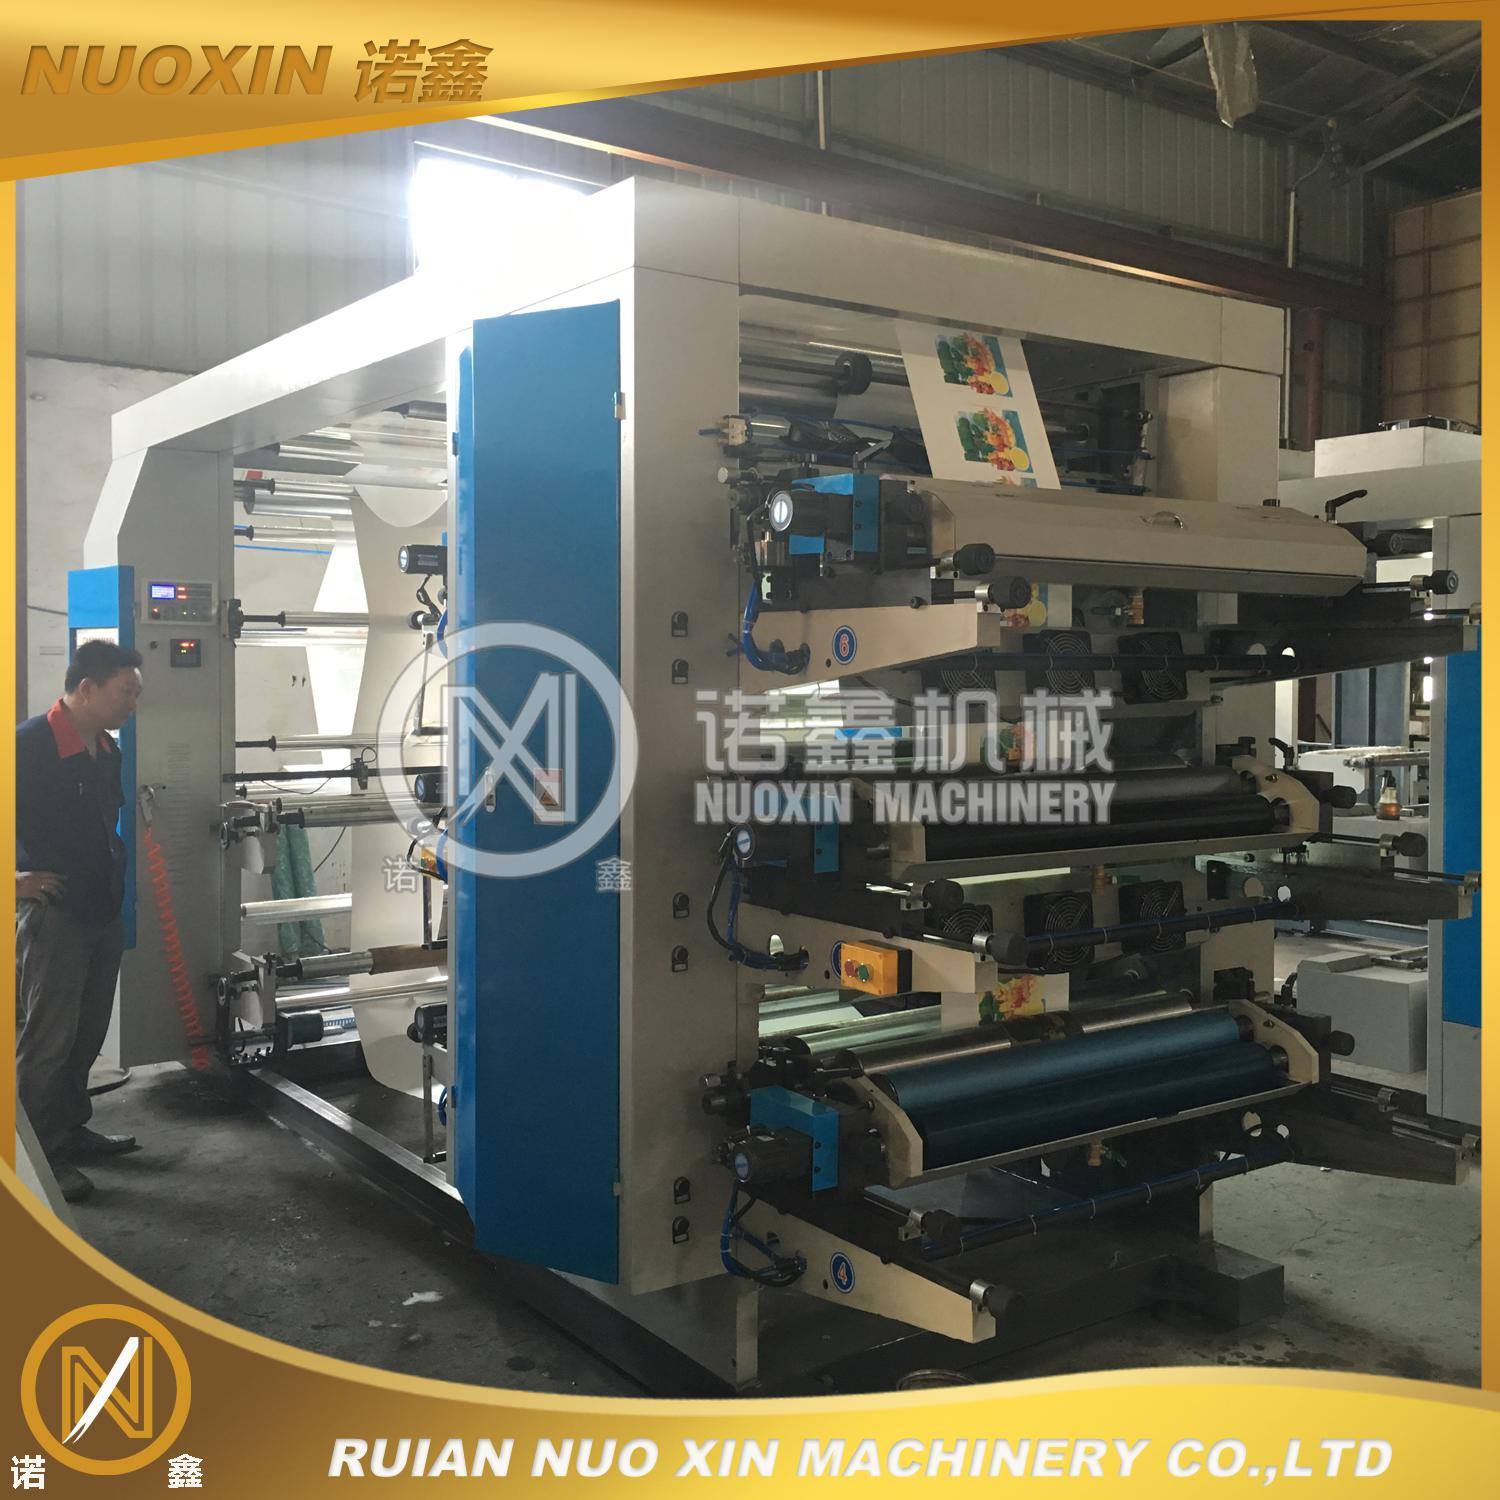 NX-6800 6 Color High Speed Plastic Film Flexographic Printing Machine